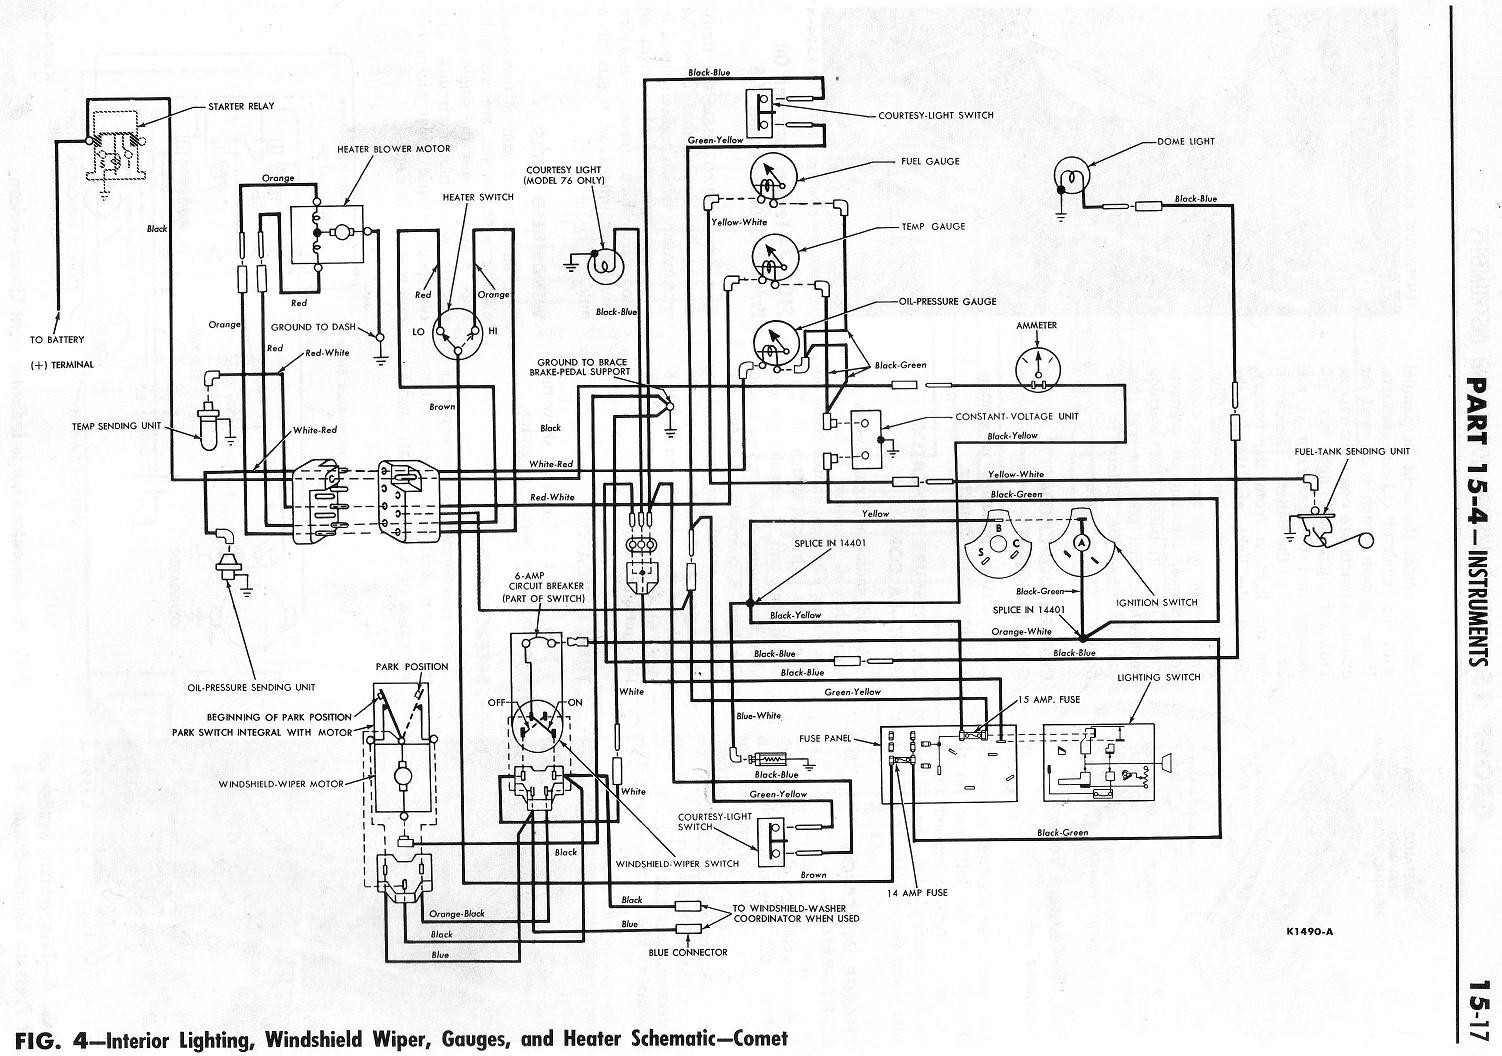 Wrg Oil Pressure Safety Switch Wiring Diagram